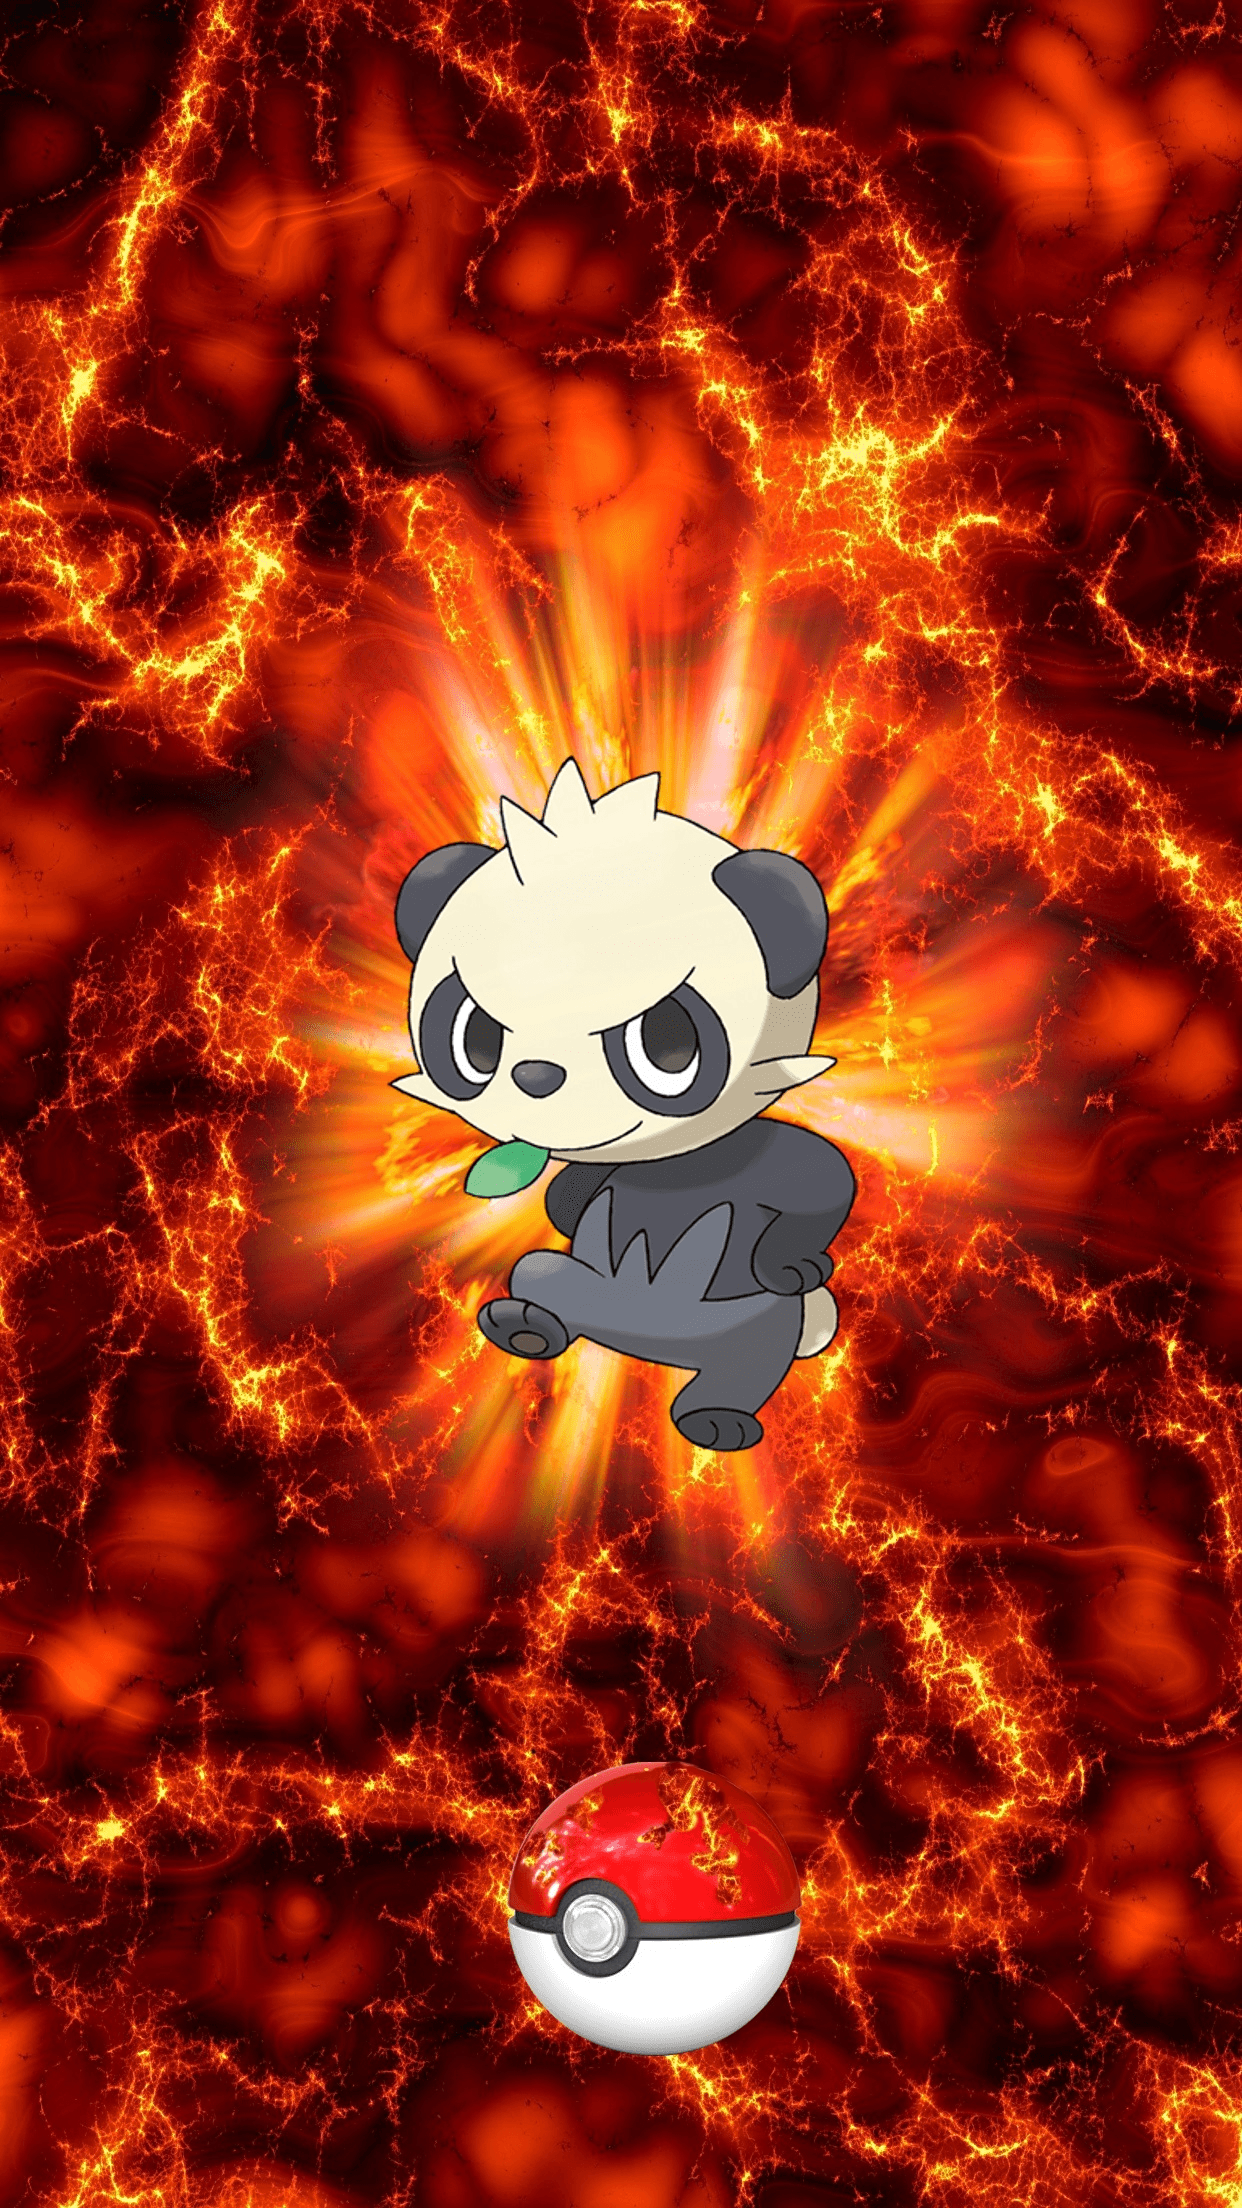 674 Fire Pokeball Pancham 142 Yancham 149 Egg | Wallpaper